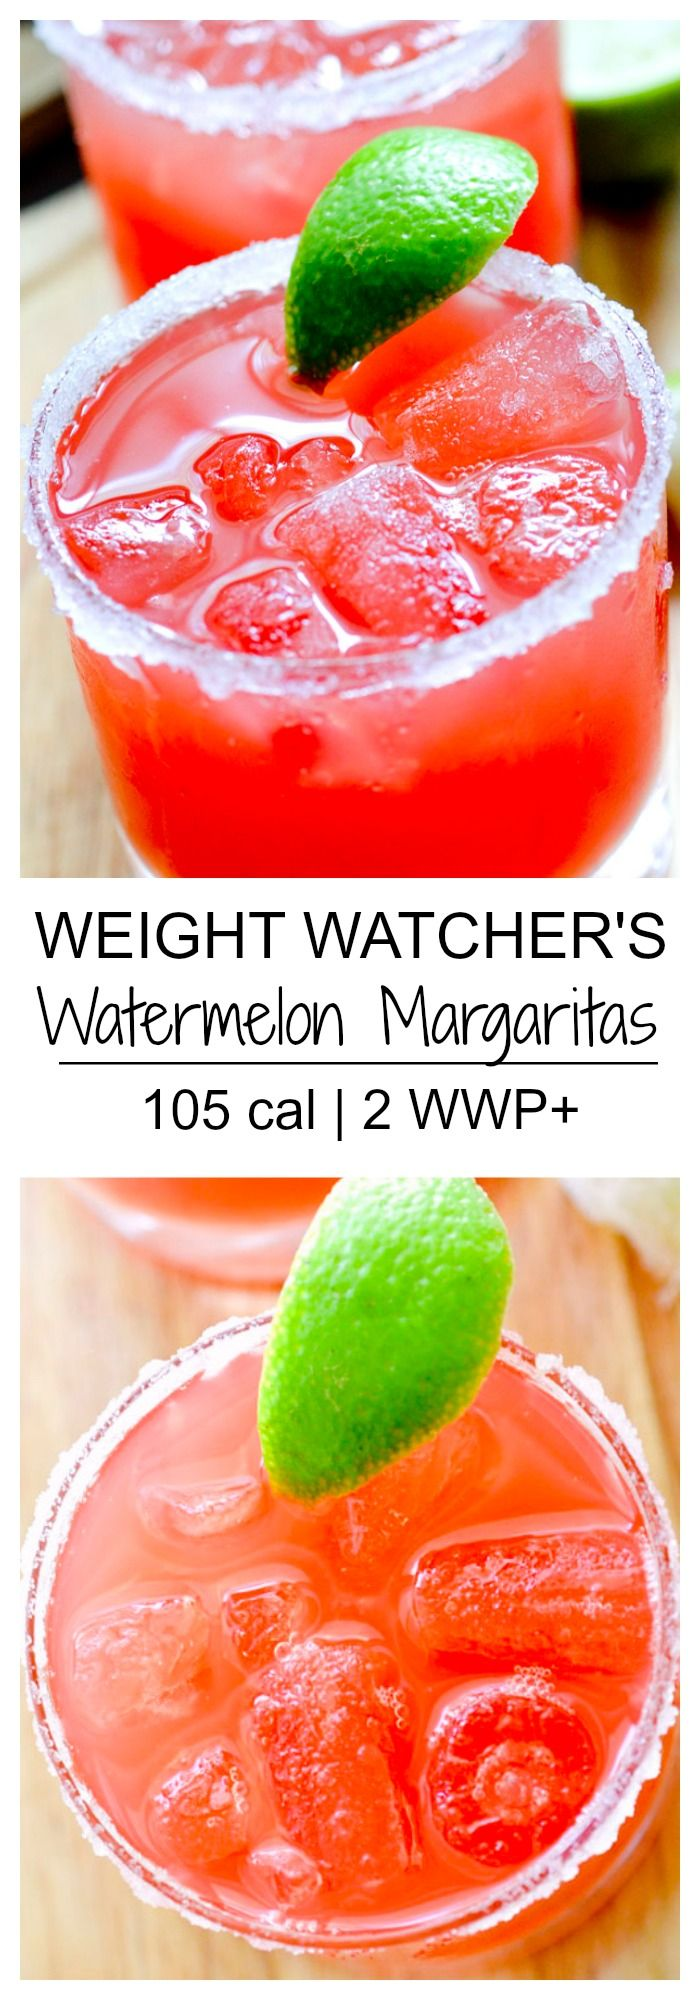 Watermelon Margaritas//In need of a detox? 10% off using our discount code 'Pin10' at www.ThinTea.com.au